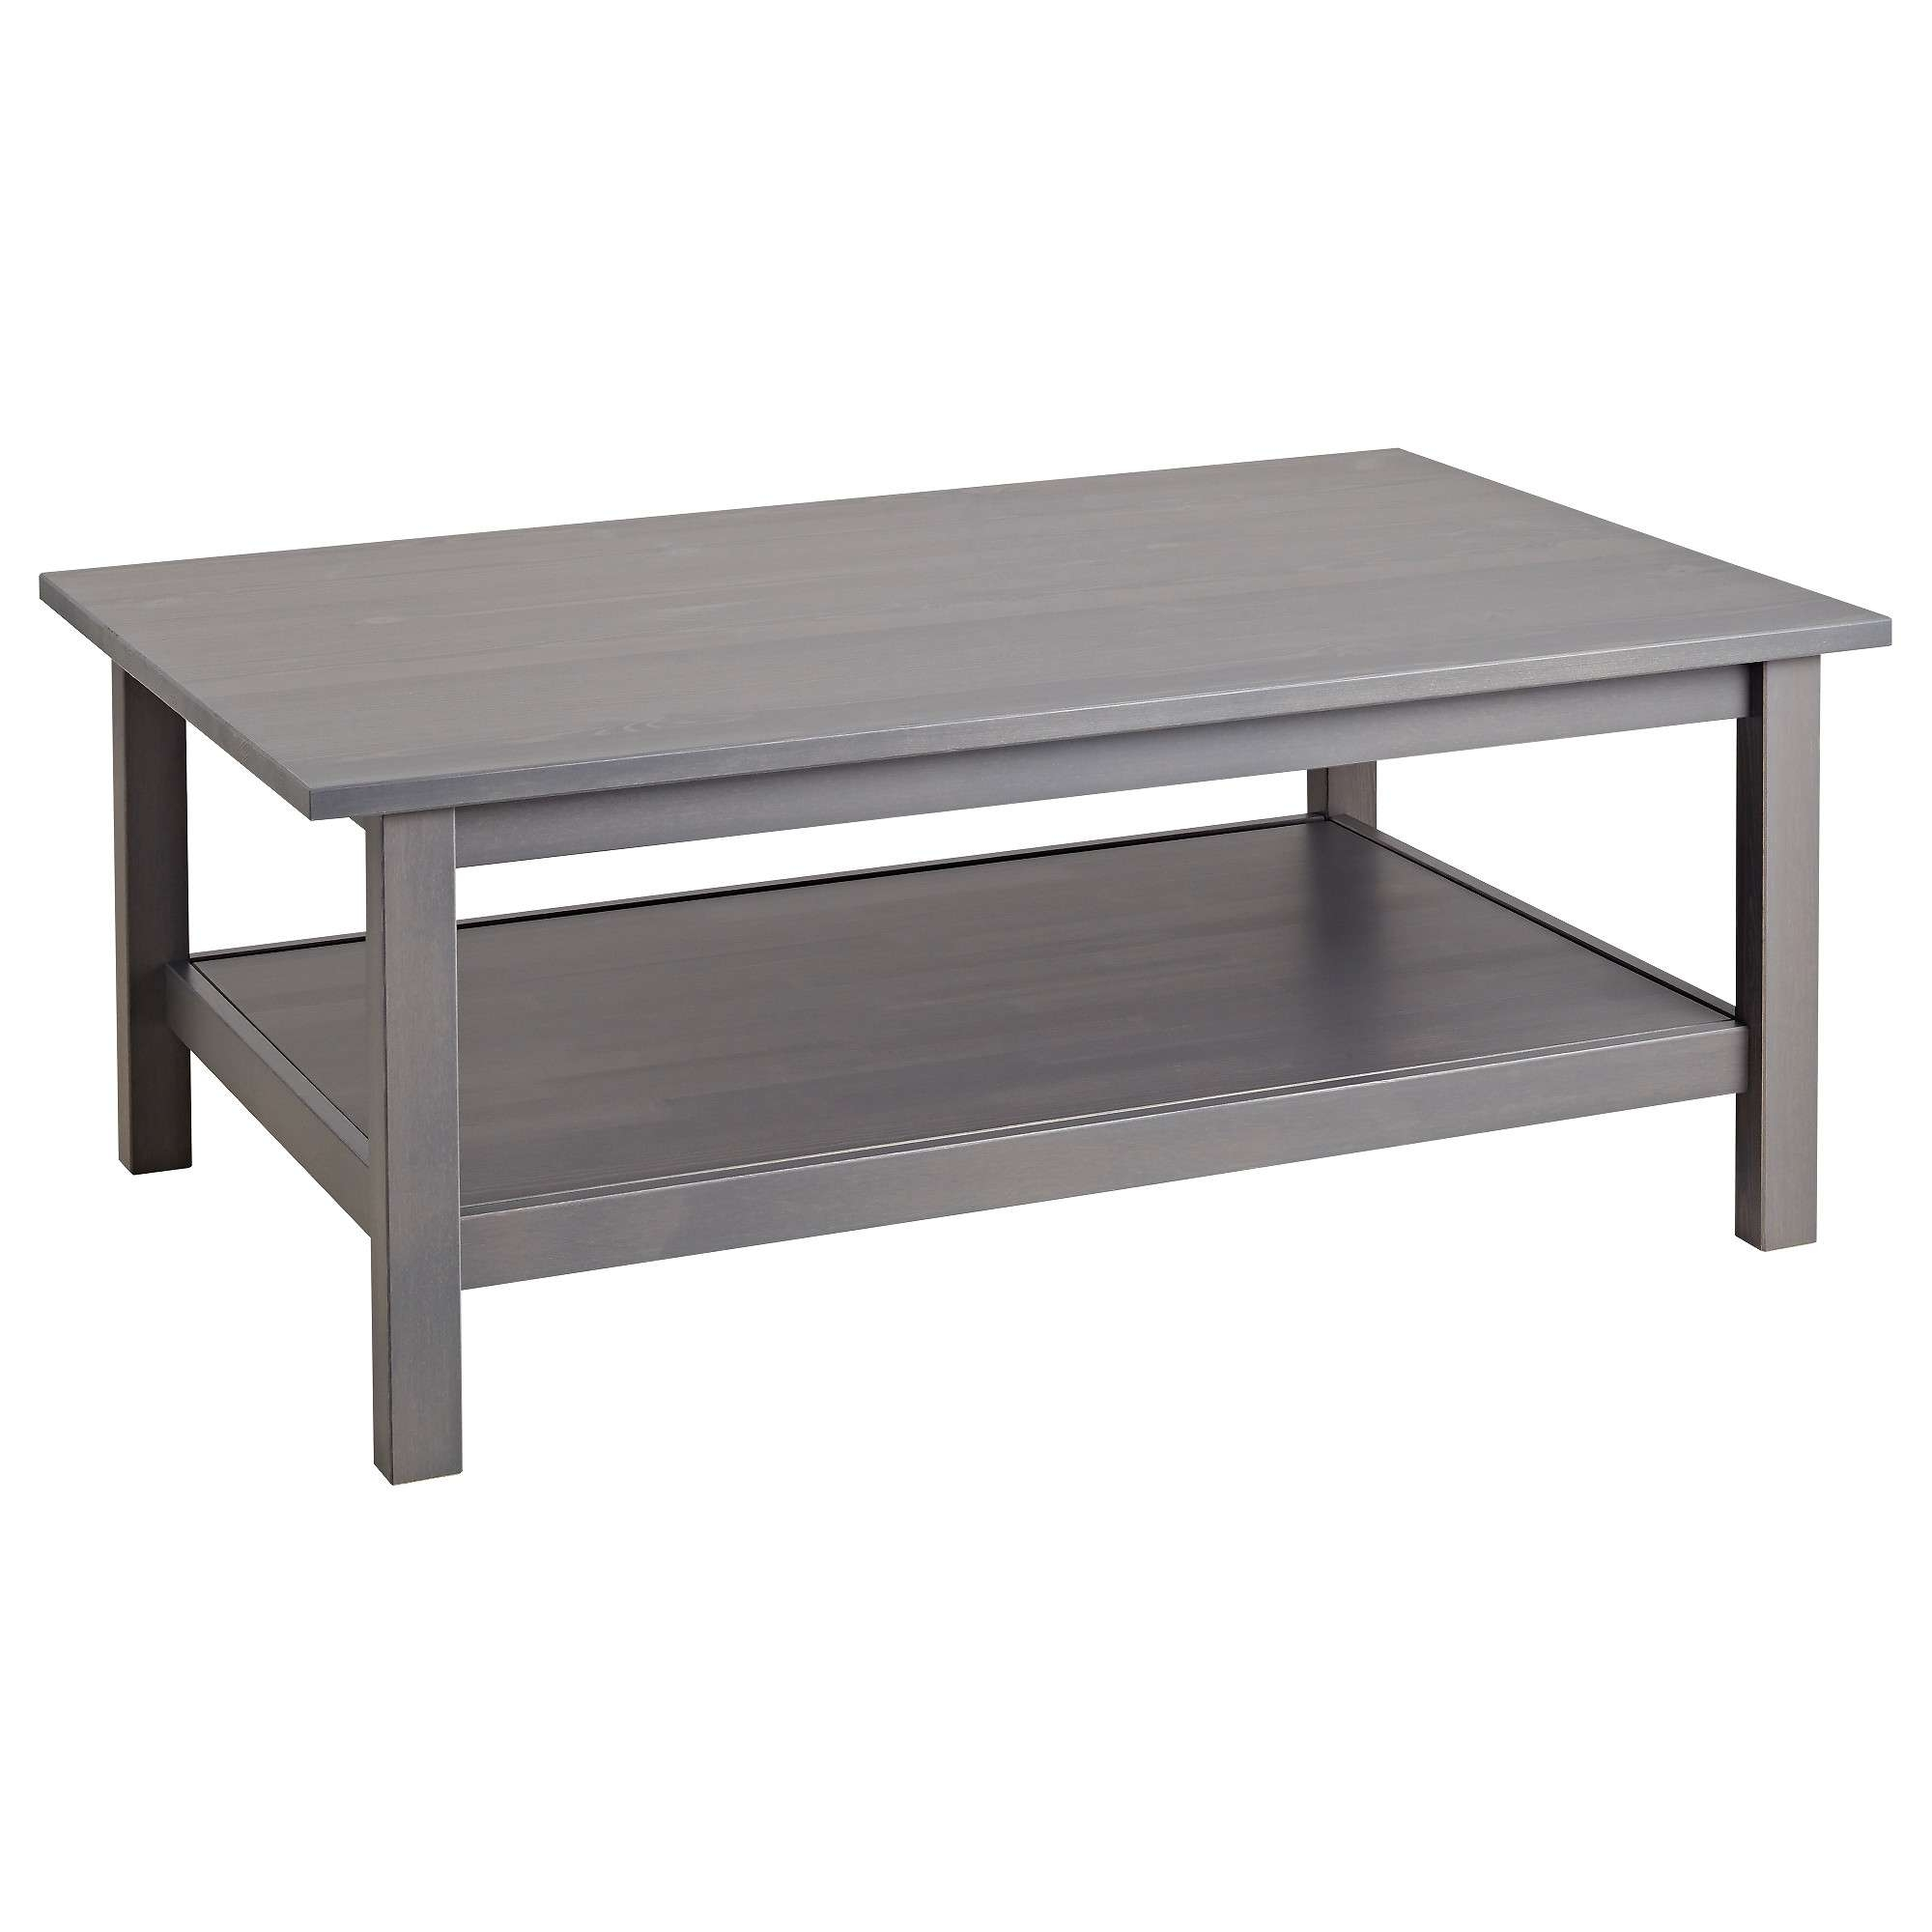 Latest Rectangular Coffee Tables Intended For Coffee Tables – Glass & Wooden Coffee Tables – Ikea (View 11 of 20)